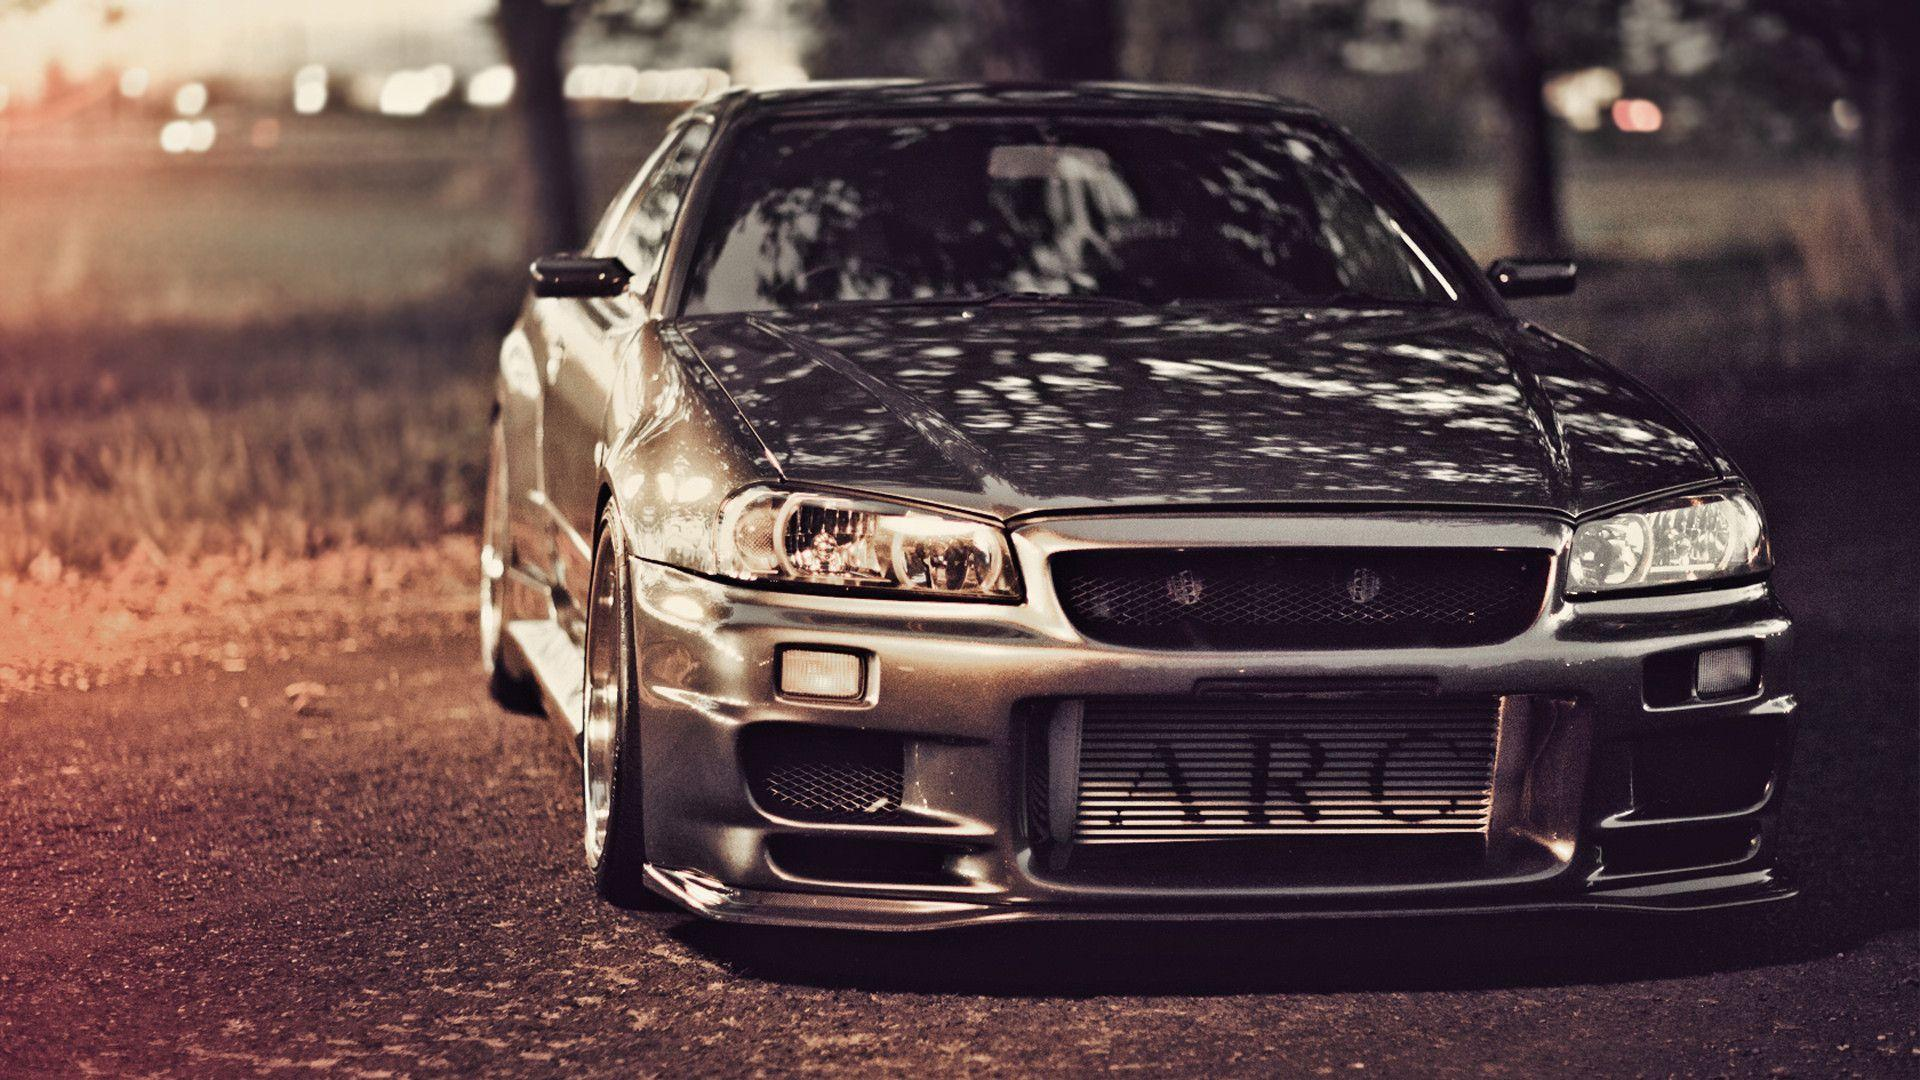 Nissan Skyline Wallpapers Top Free Nissan Skyline